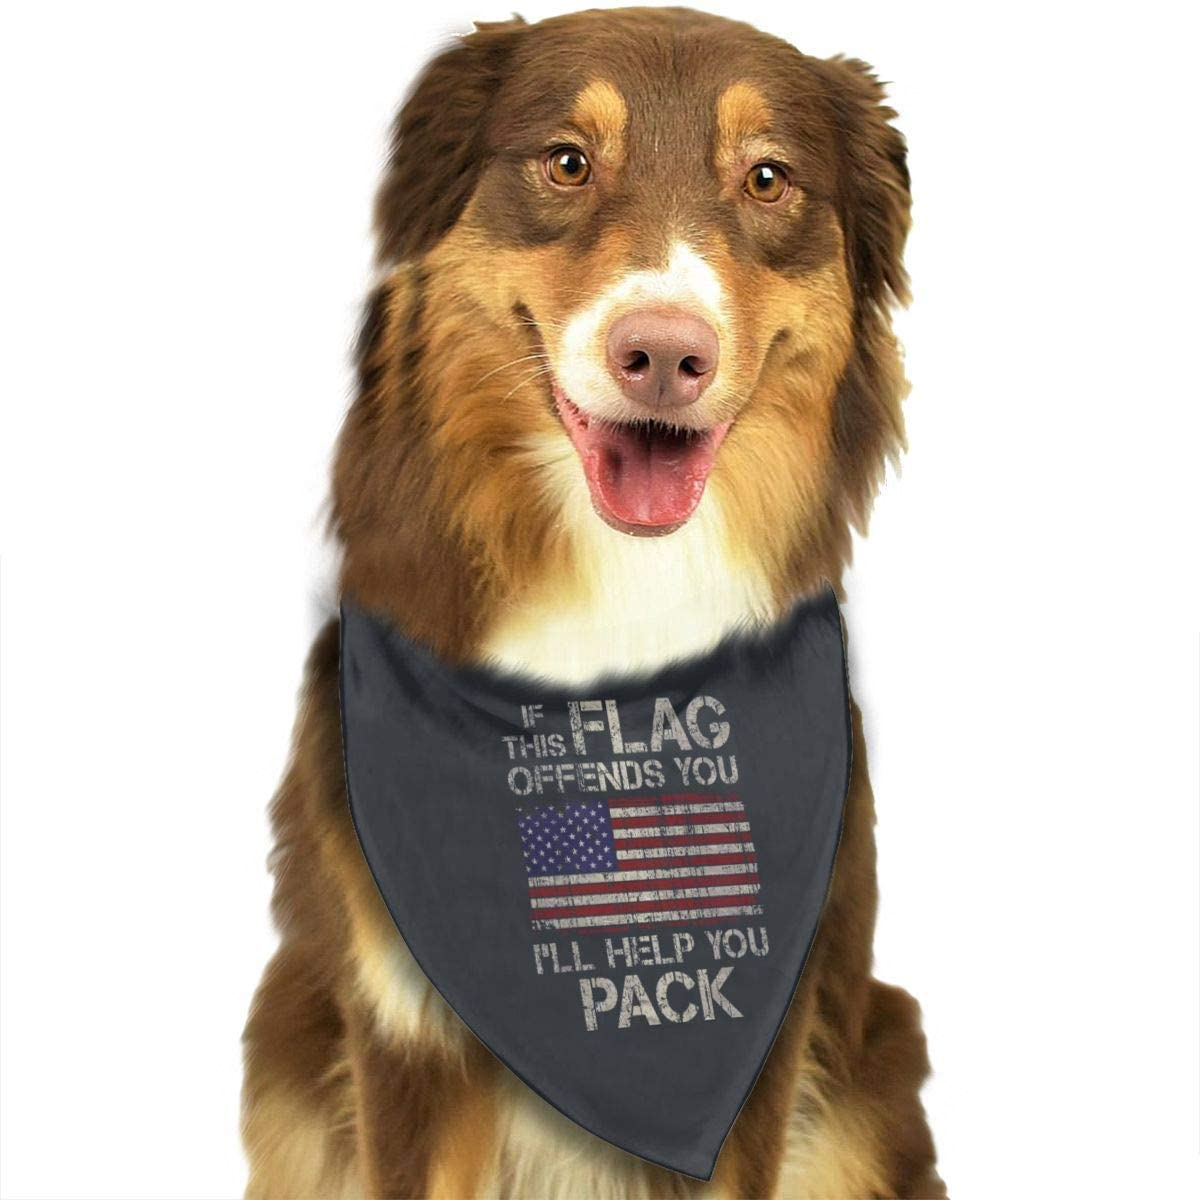 CHAN03 Dogs Bandana Collars If This Flag Offends You, I'll Help You Pack Pets Triangle Neckerchief Puppy Bibs Scarfs Cats Scarfs Towel